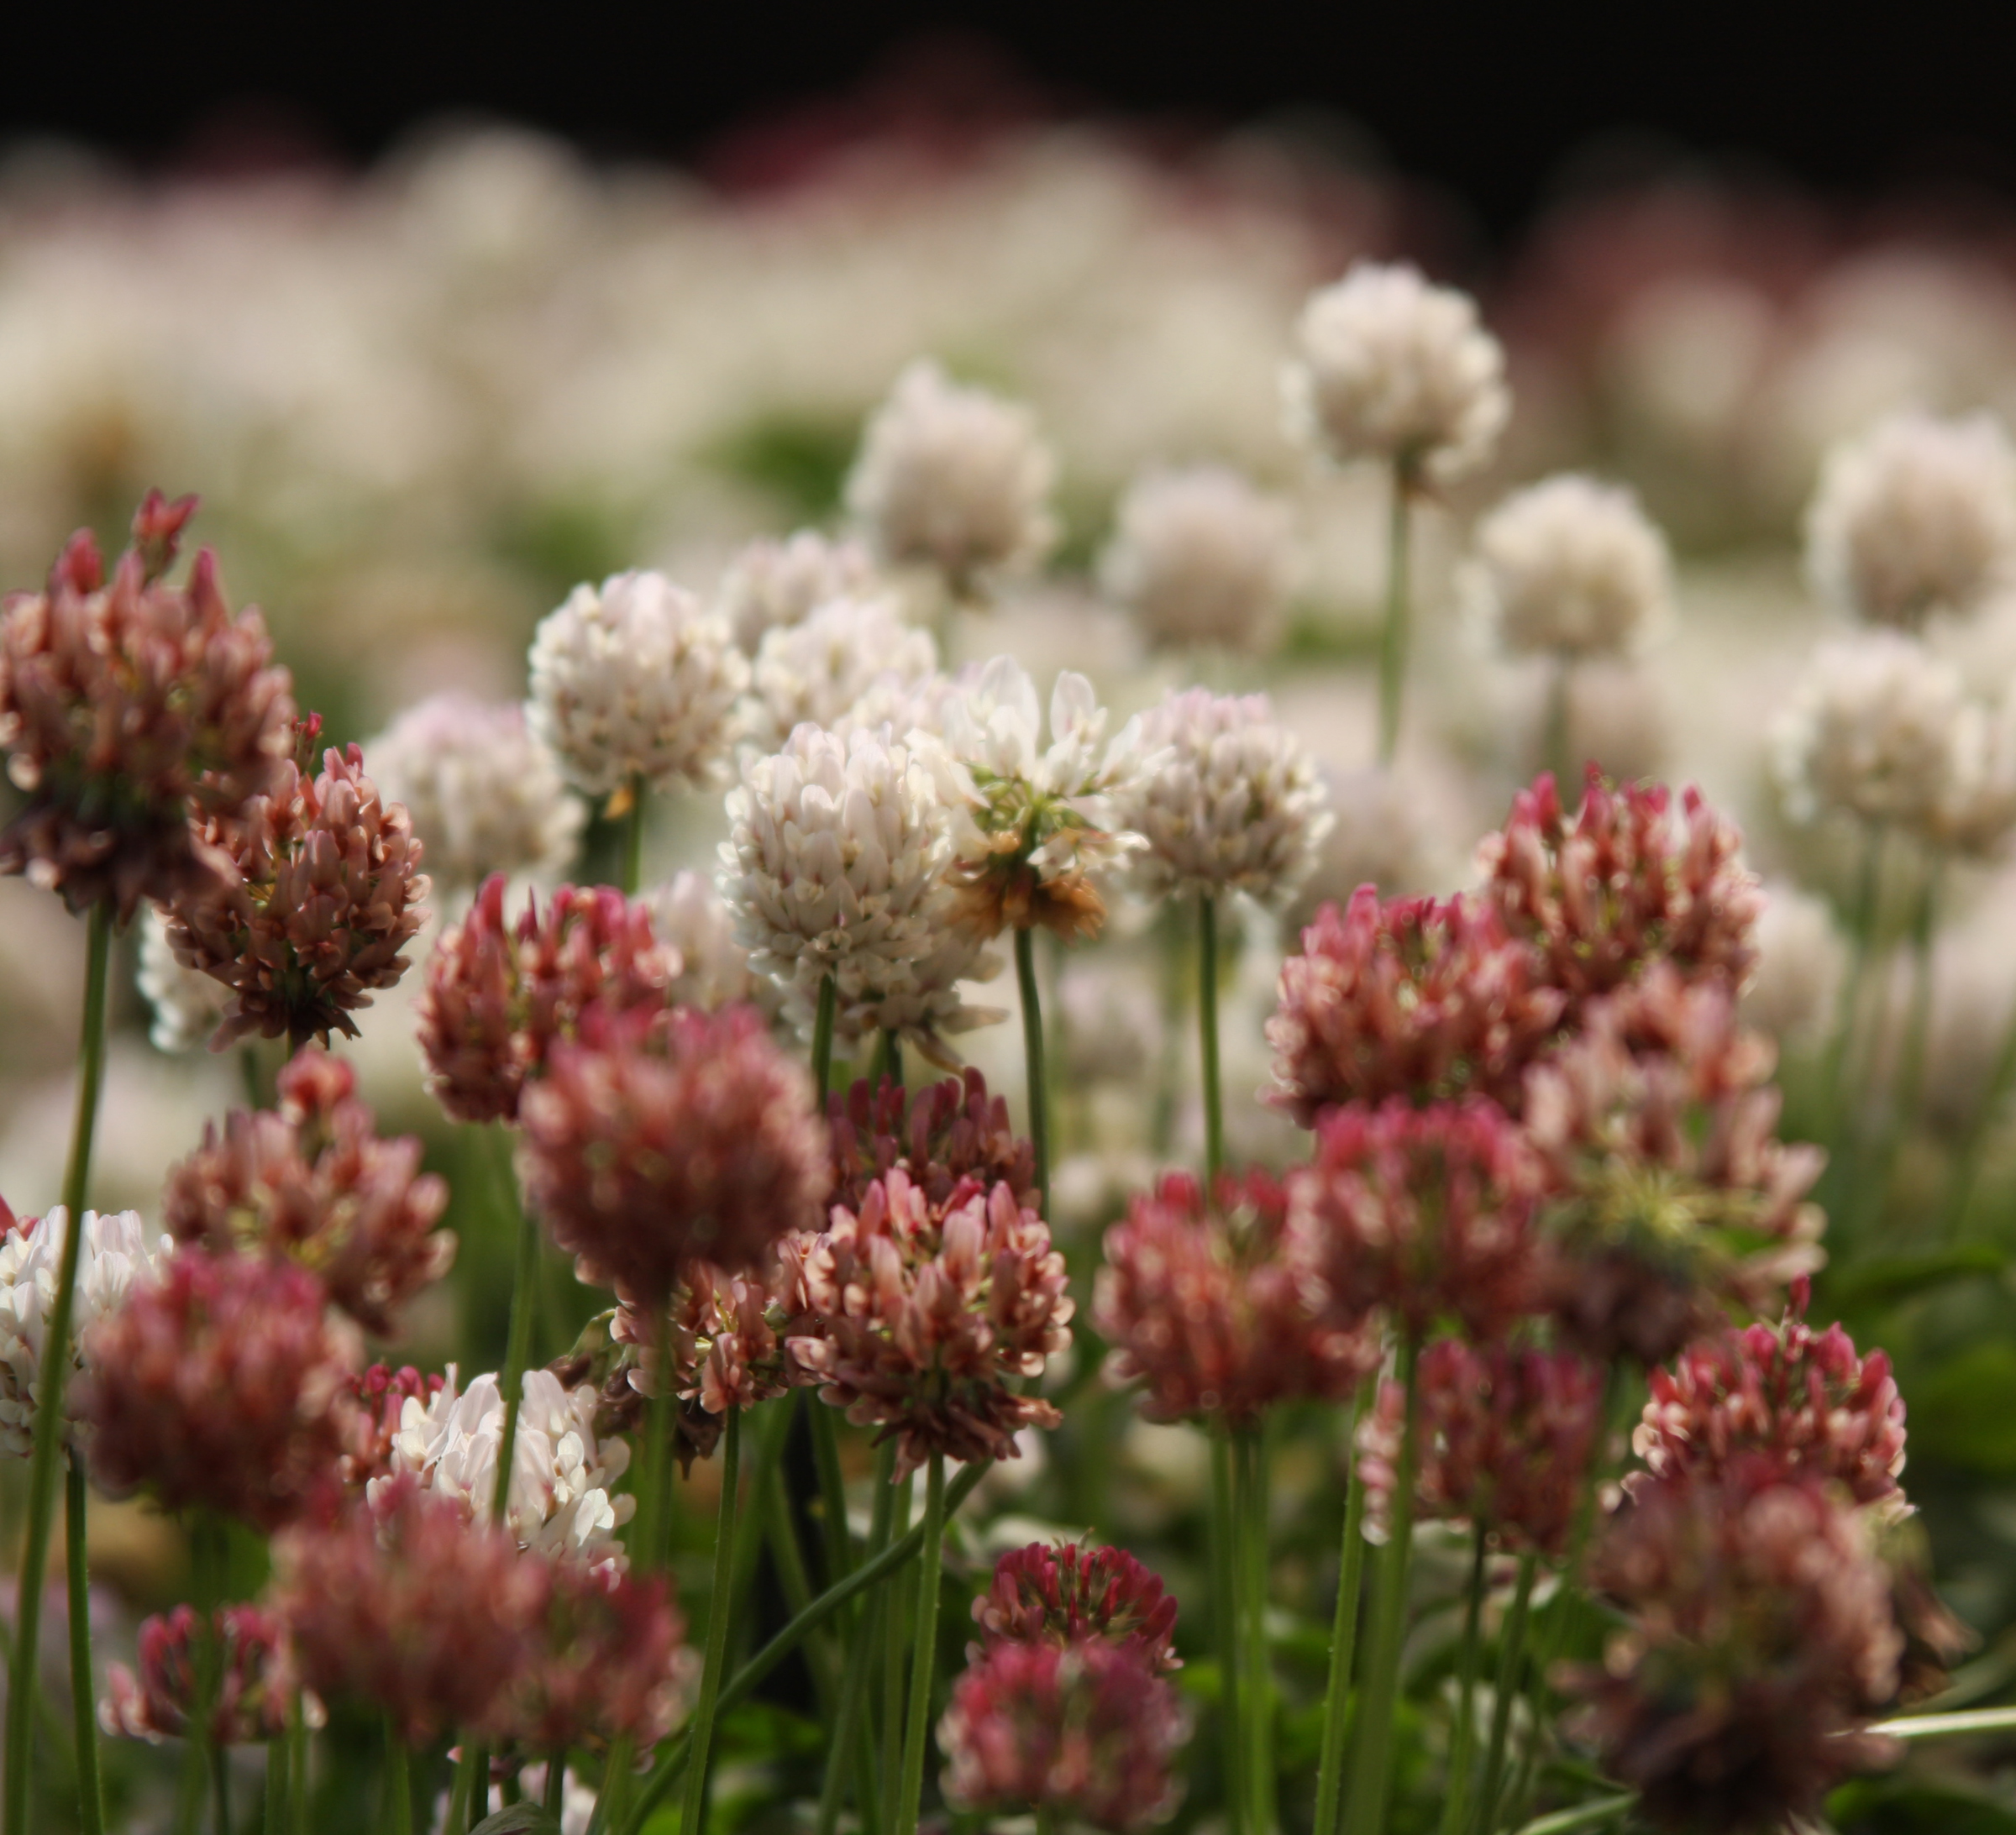 Deep pink flowers on this clover differ from the plant's typical white flowers.